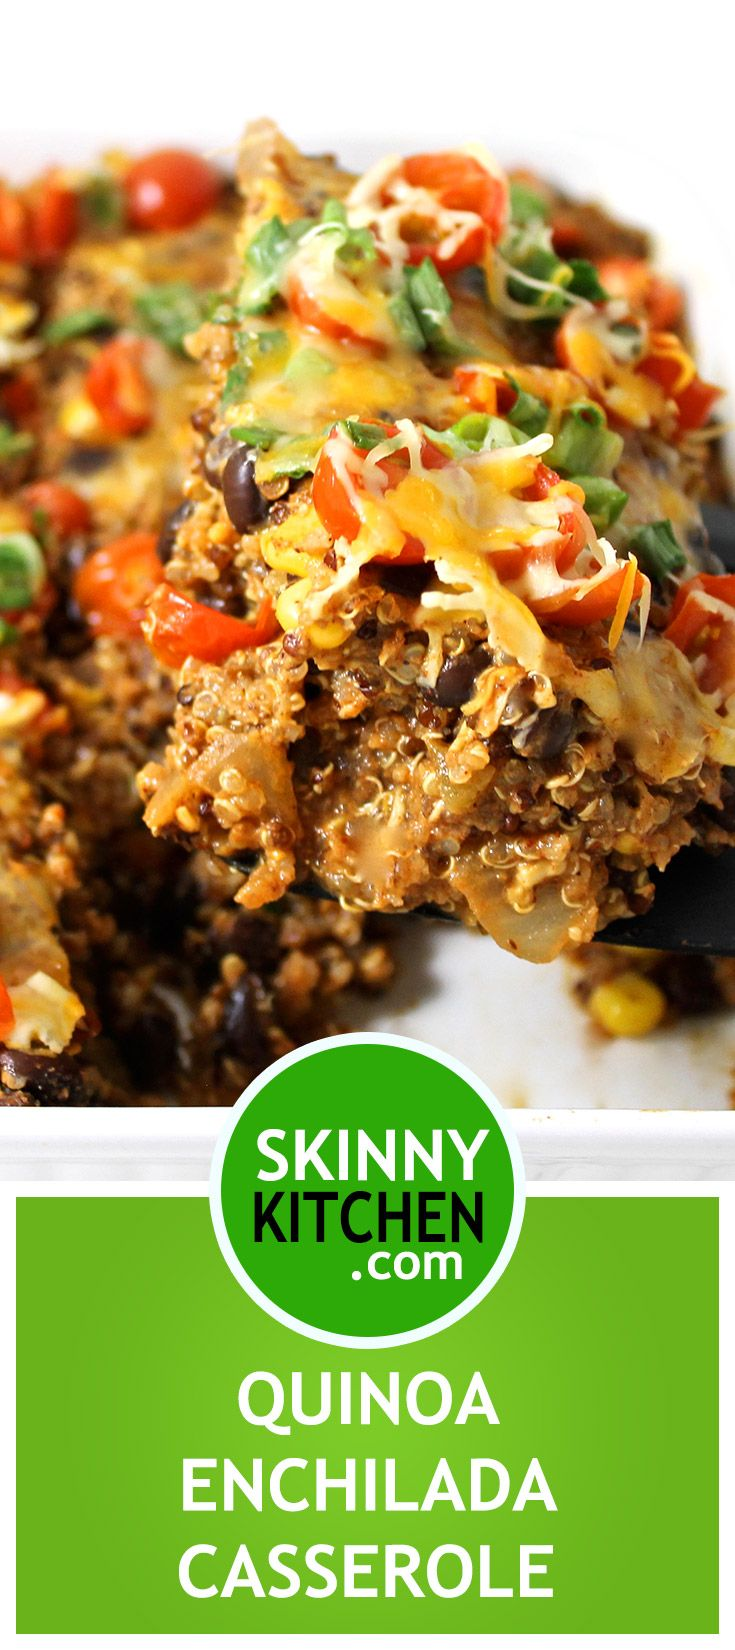 For #meatlessmonday:Skinny, Vegetarian Quinoa Enchilada Casserole. It's a lightened-up, healthy enchilada casserole chockfull of quinoa, black beans and corn. One serving has 293 calories, 7g fat & 8 Weight Watchers POINTS PLUS. http://www.skinnykitchen.com/recipes/skinny-vegetarian-quinoa-enchilada-casserole/